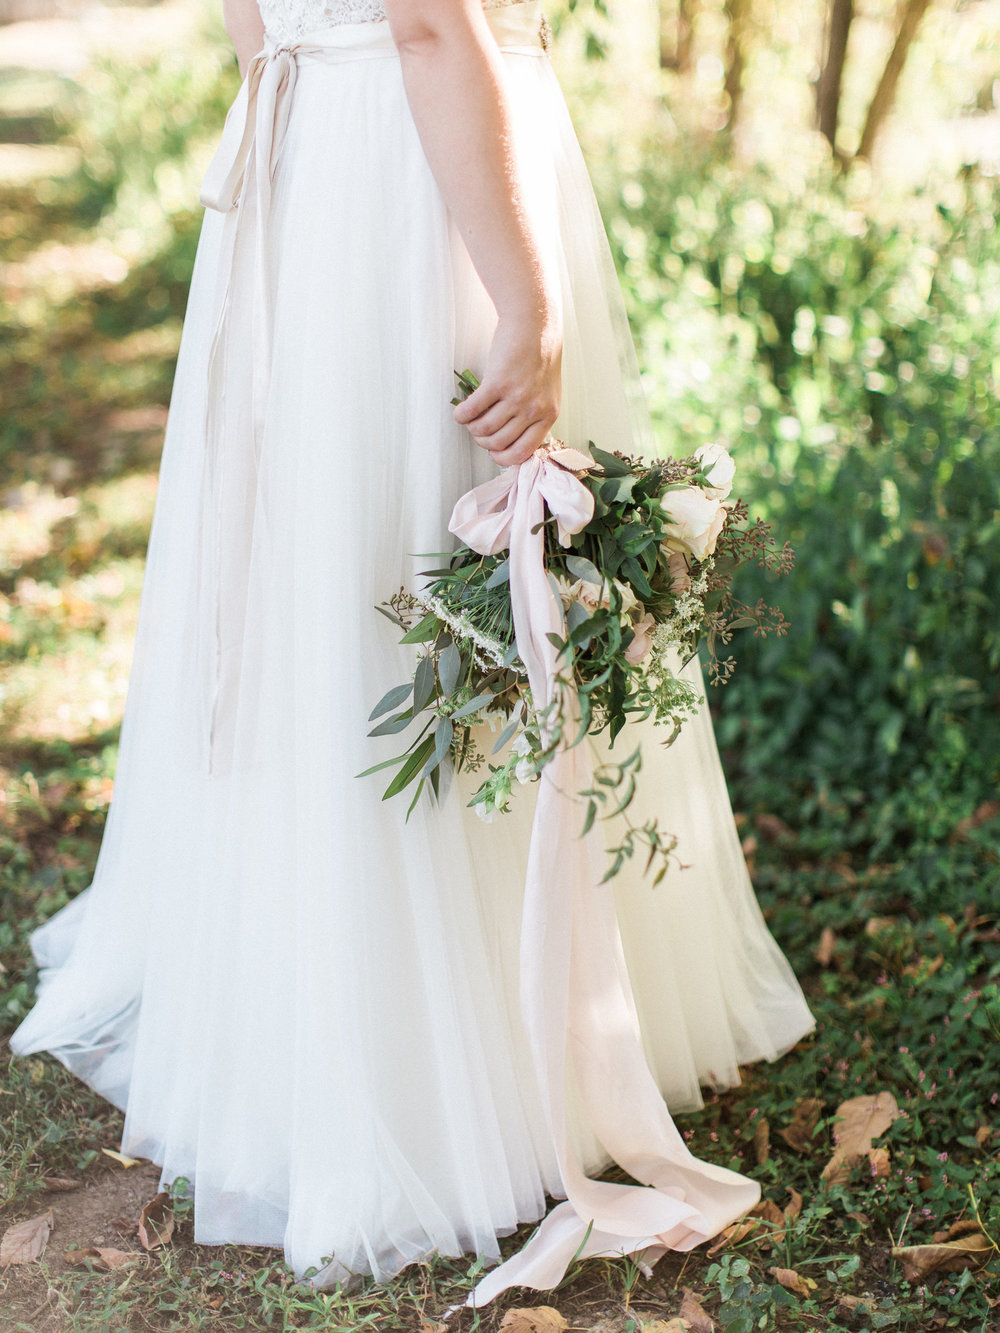 $1500+ - leaf, petal & vine——A lovely wedding filled with minimal florals and tons of gorgeous foliage and greenery. We'll adorn your reception tablescapes with beautiful greenery, luminaries and accents.